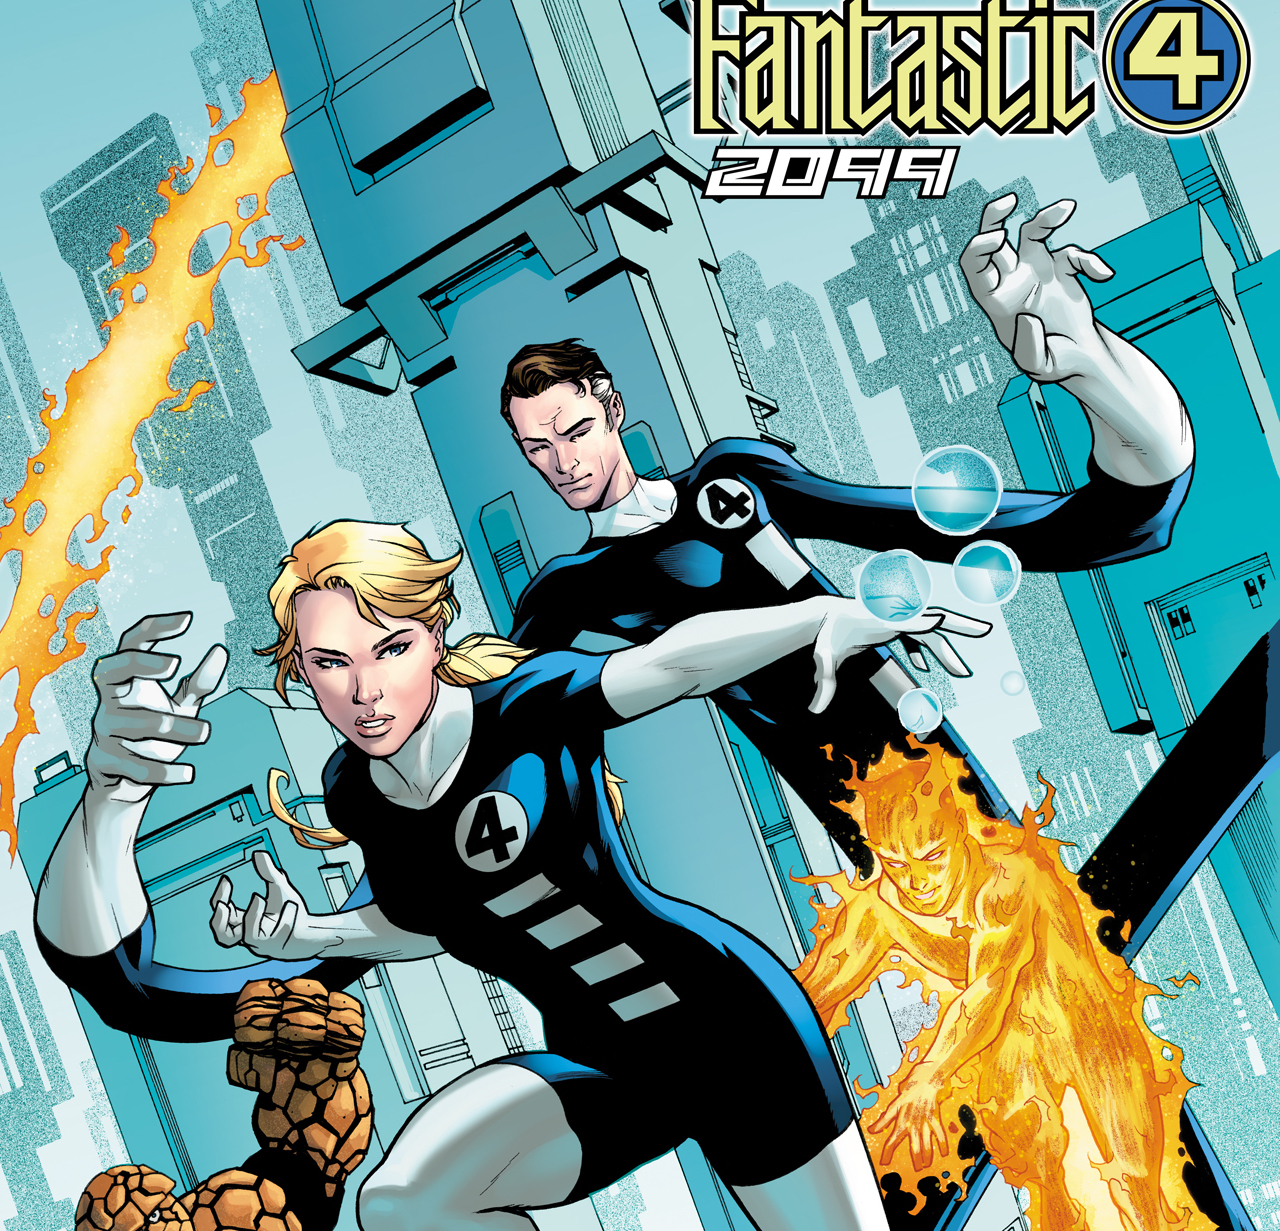 EXCLUSIVE Marvel First Look: Fantastic Four 2099 #1 variant cover